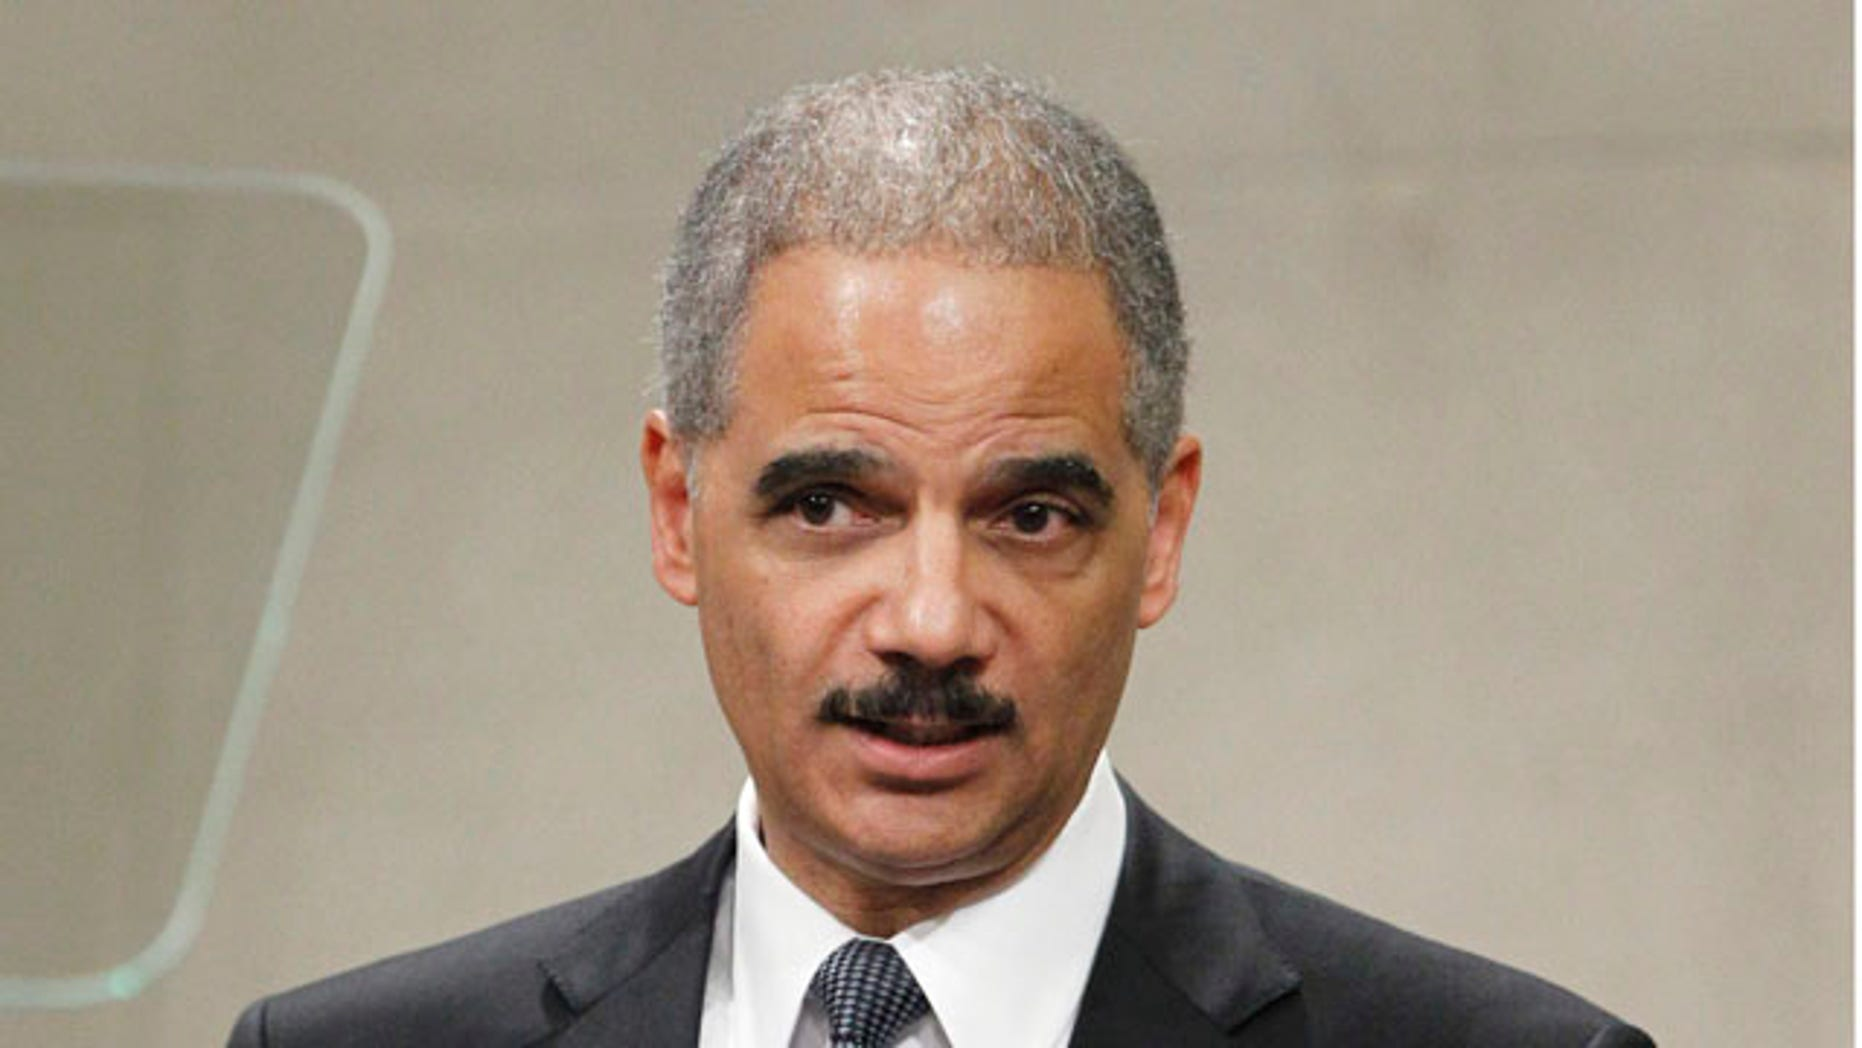 Jan. 11:Attorney General Eric Holder delivers remarks at the Martin Luther King Jr. commemorative program, at the Justice Department in Washington.